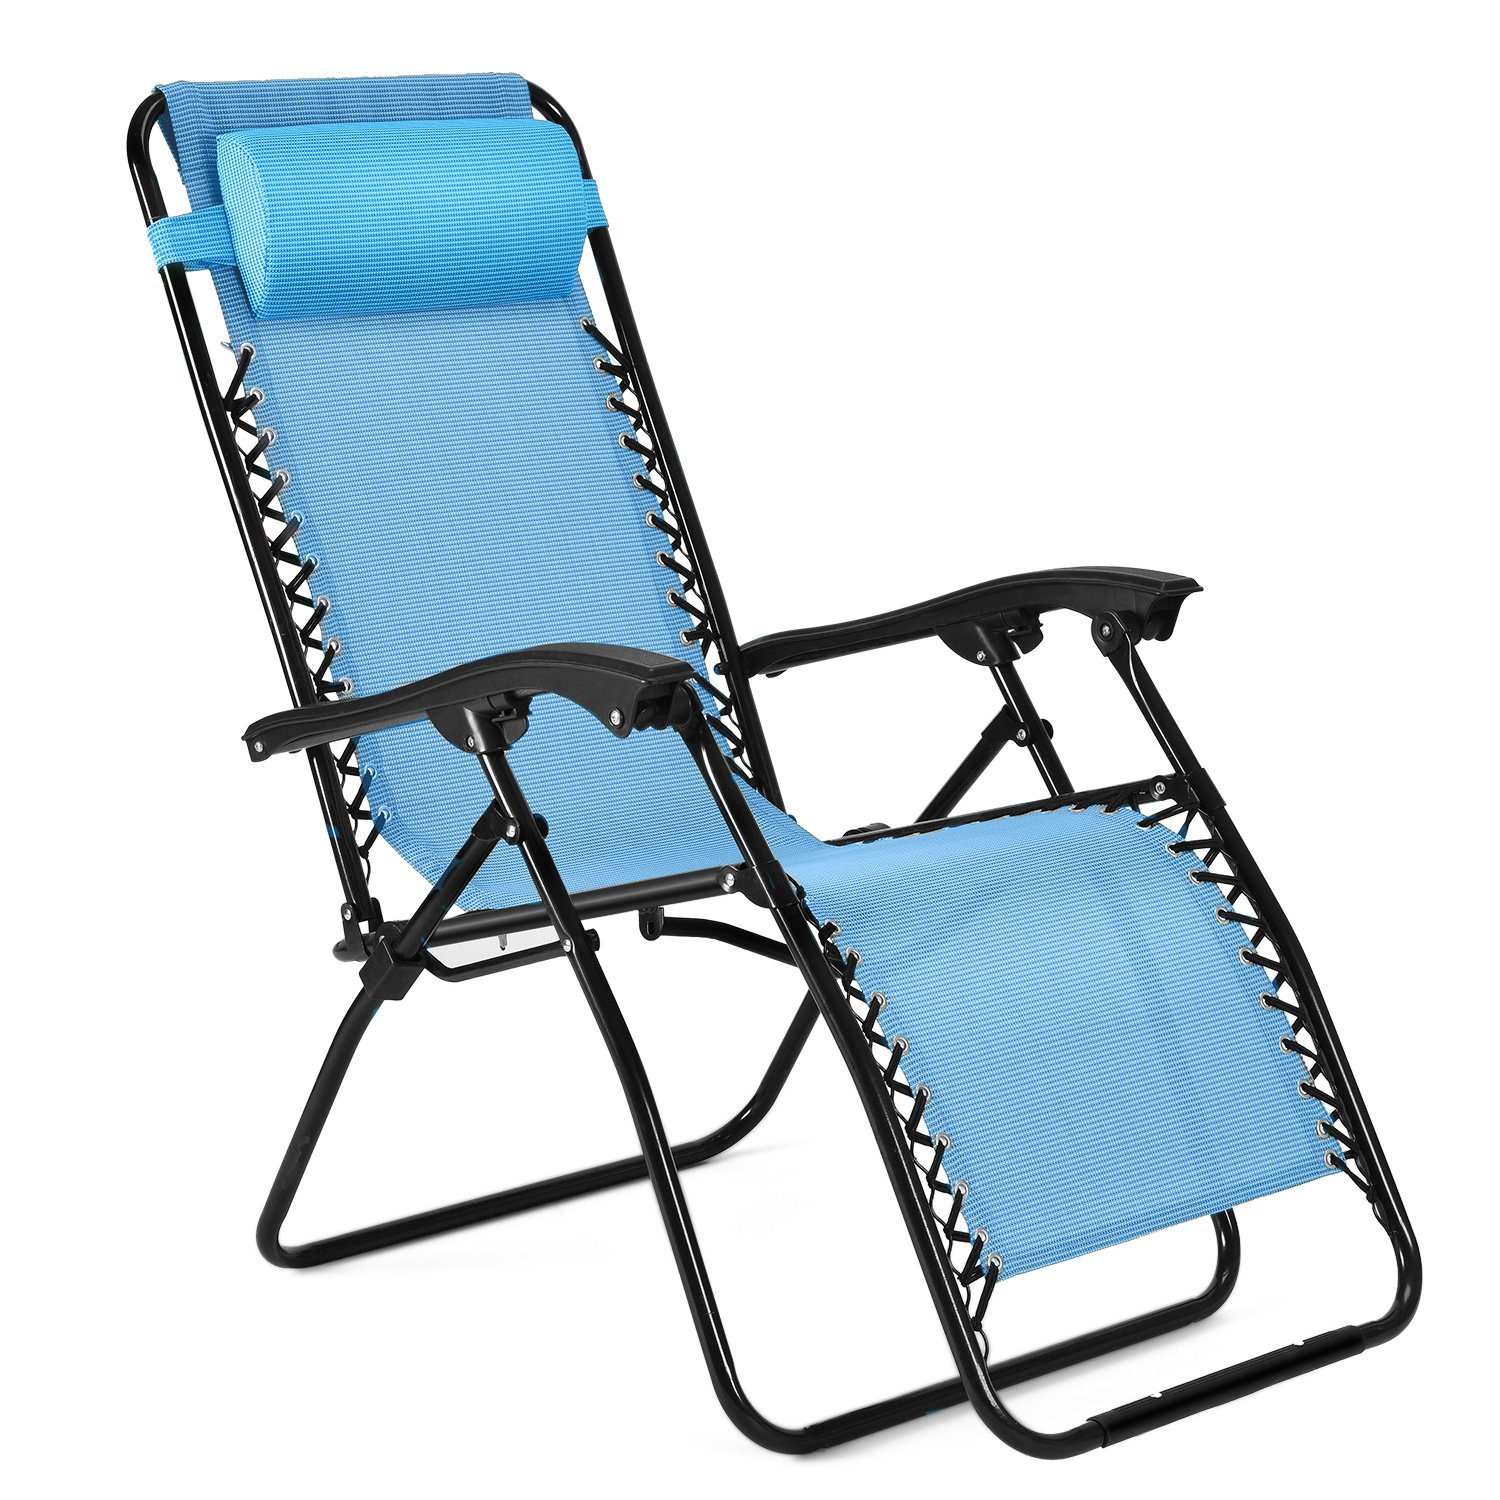 Flexzion Zero Gravity Chair - Anti Gravity Outdoor Lounge Patio Folding Reclining Chair and Textilene Seat with Footrest & Adjustable Pillow for Yard, Beach, Camping, Garden, Pool (Sky Blue)